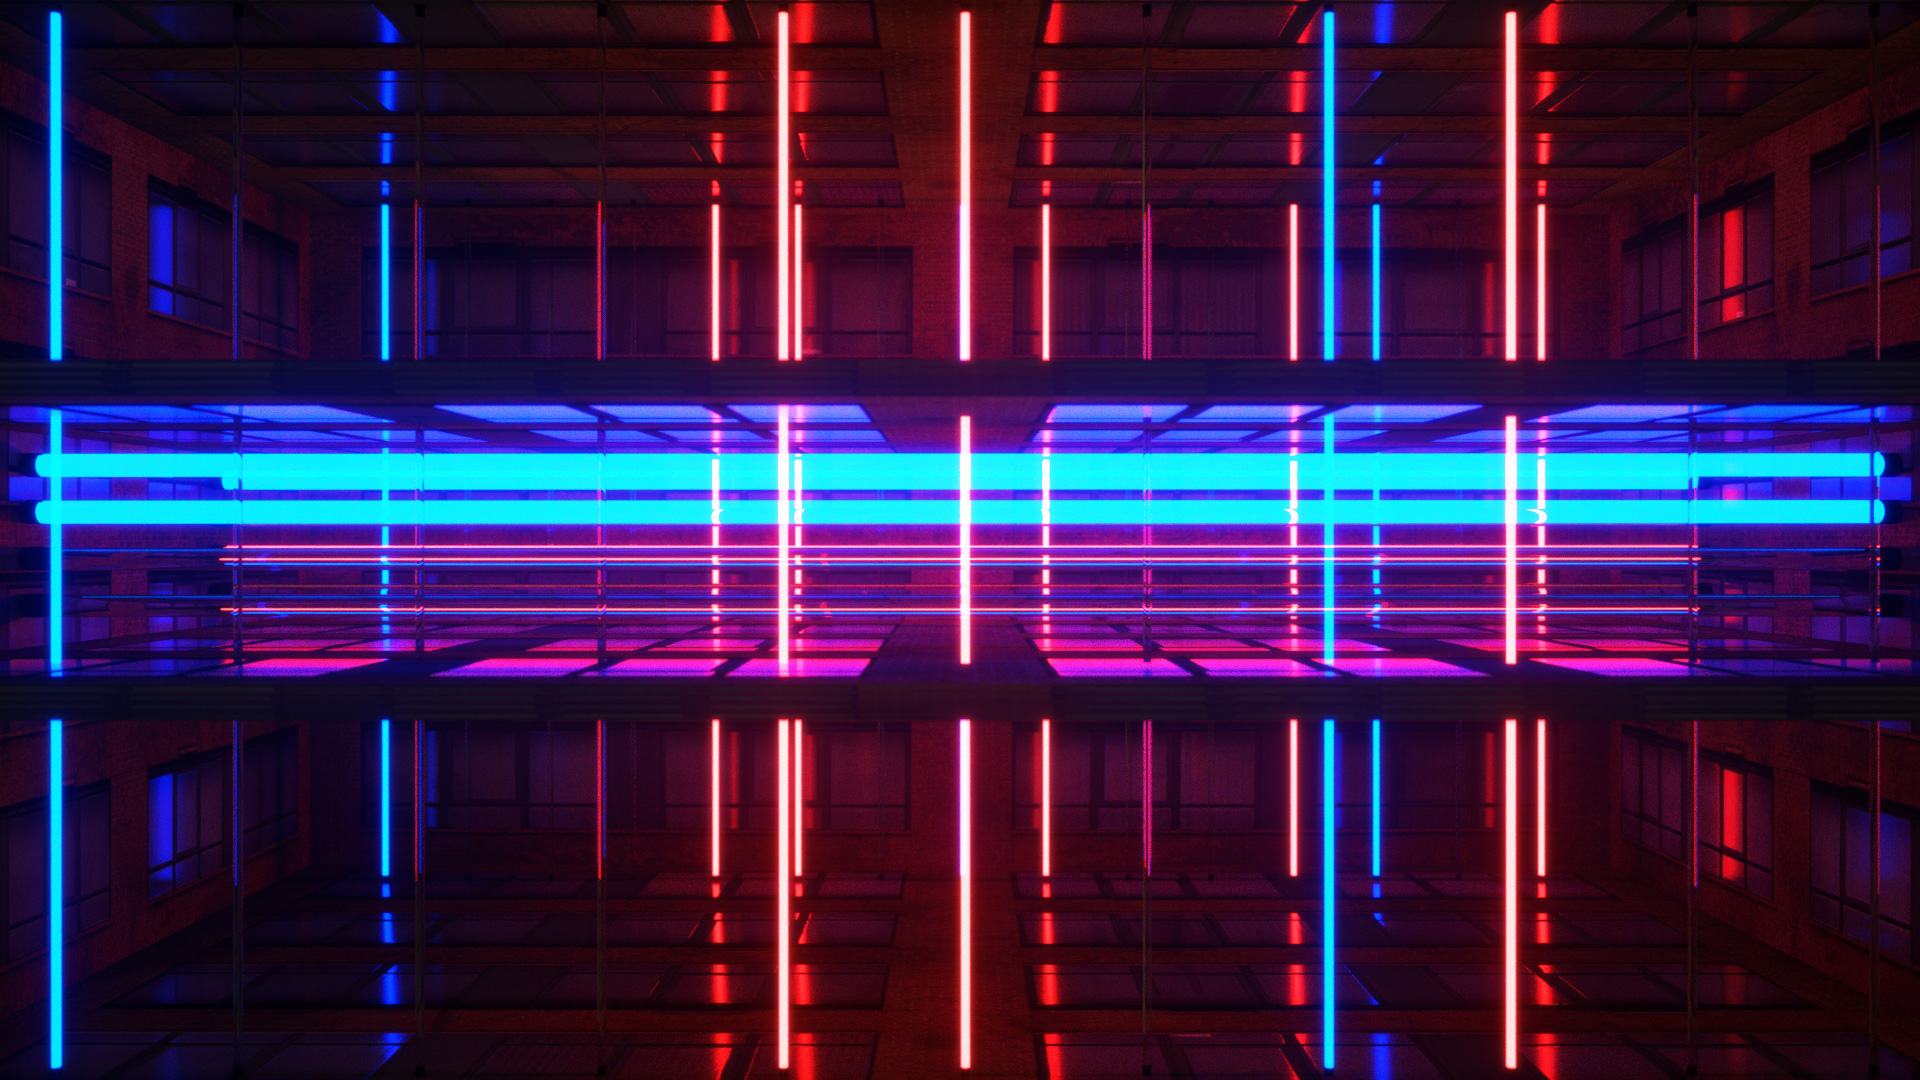 Neon rooms vj pack ghosteam vj loops video templates for Neon lights for rooms